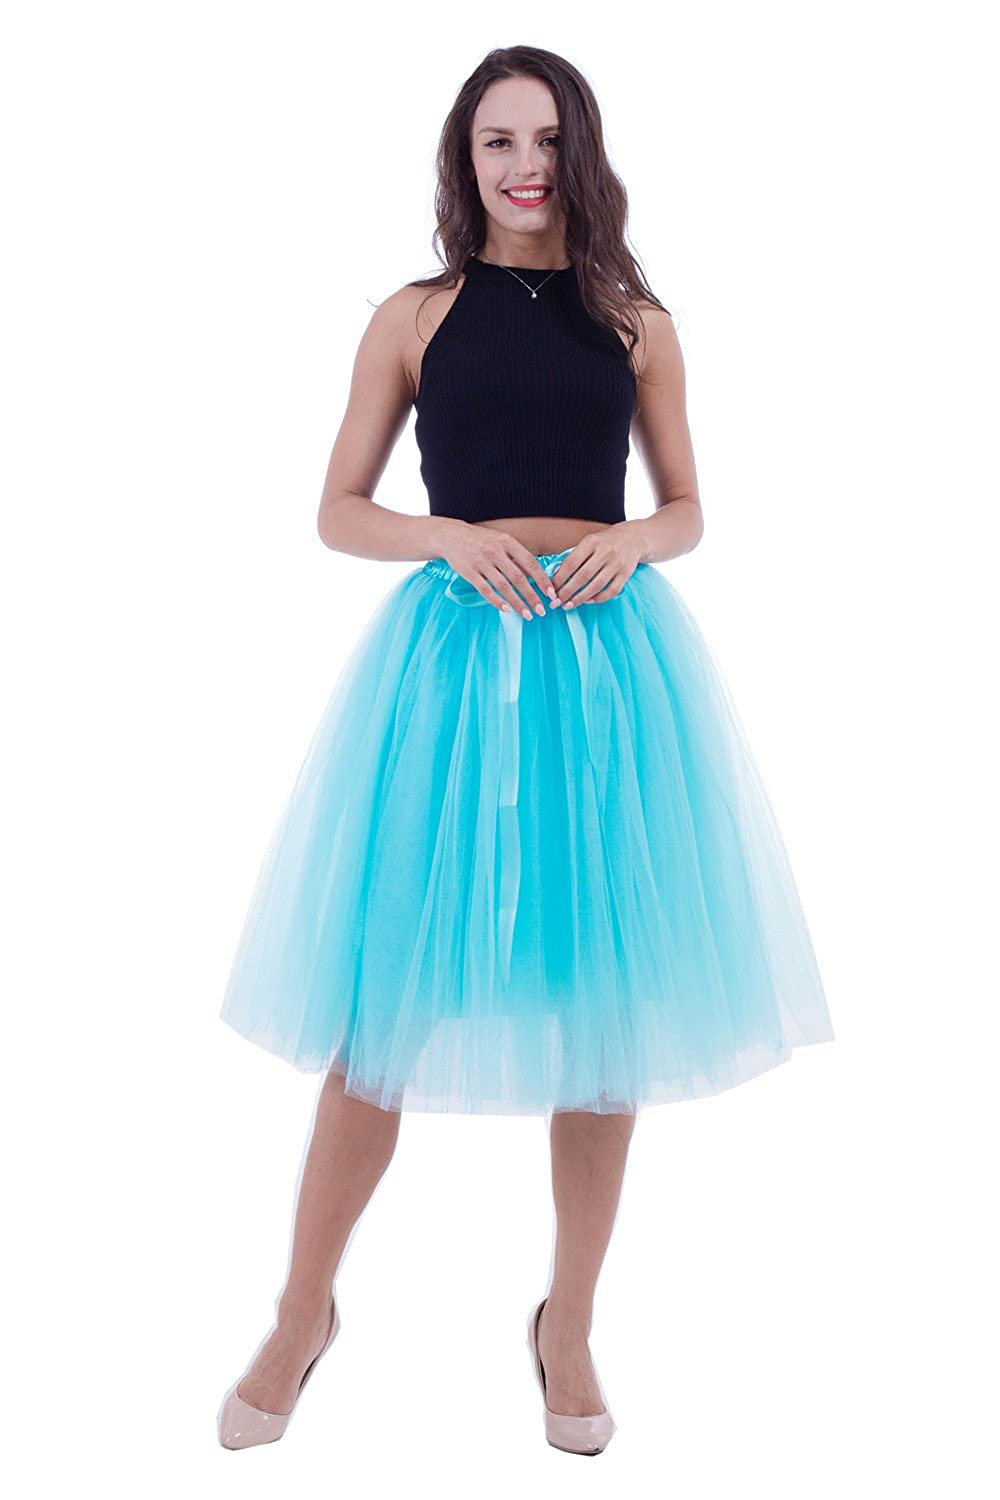 kephy Women's Adult 7 Layered Pleated Tulle Tutu Skirt A Line Knee Length Petticoat Prom Party Skirt QM002-Beige